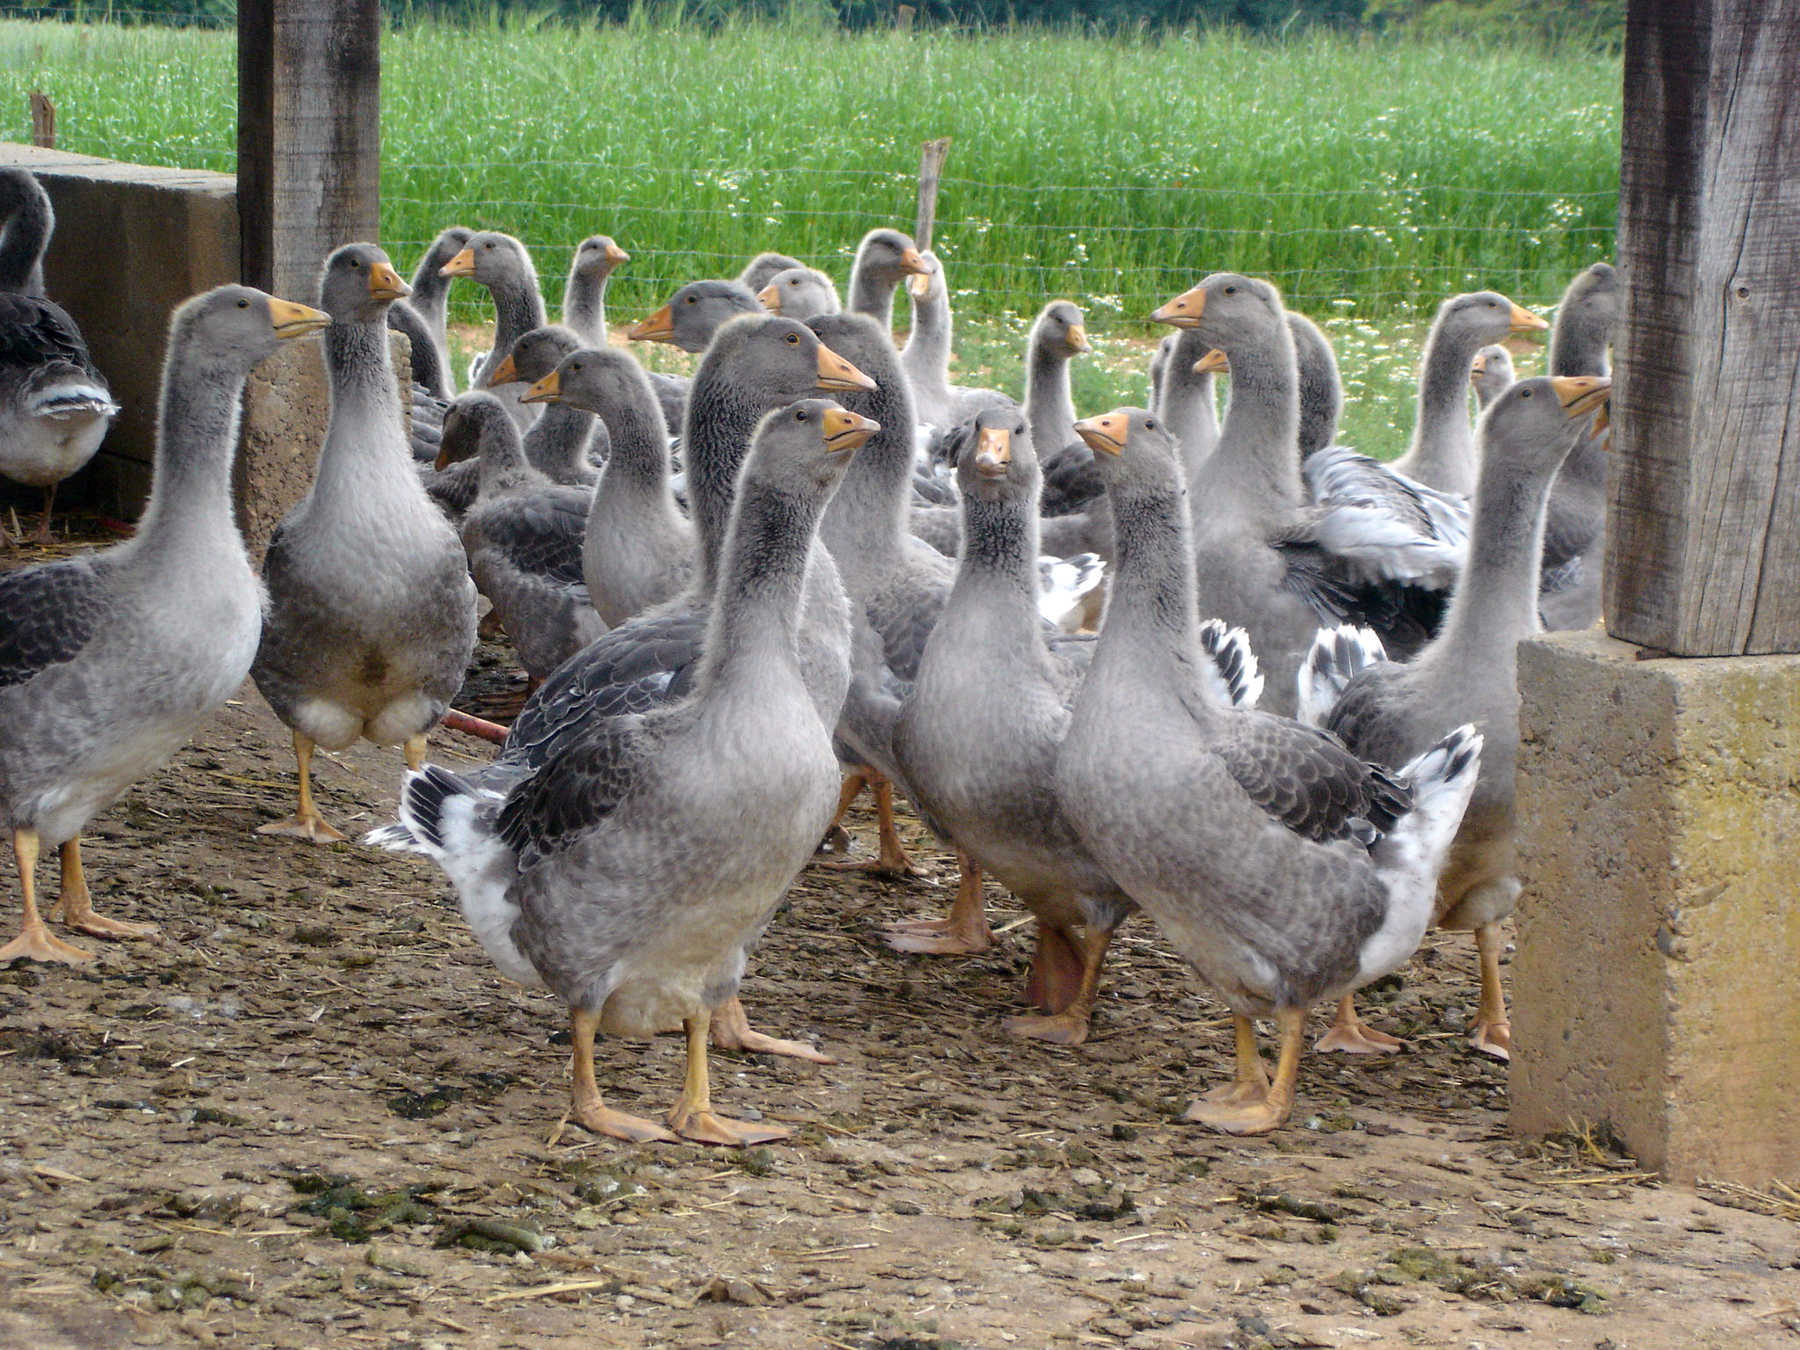 Farm Geese in Dordogne, France